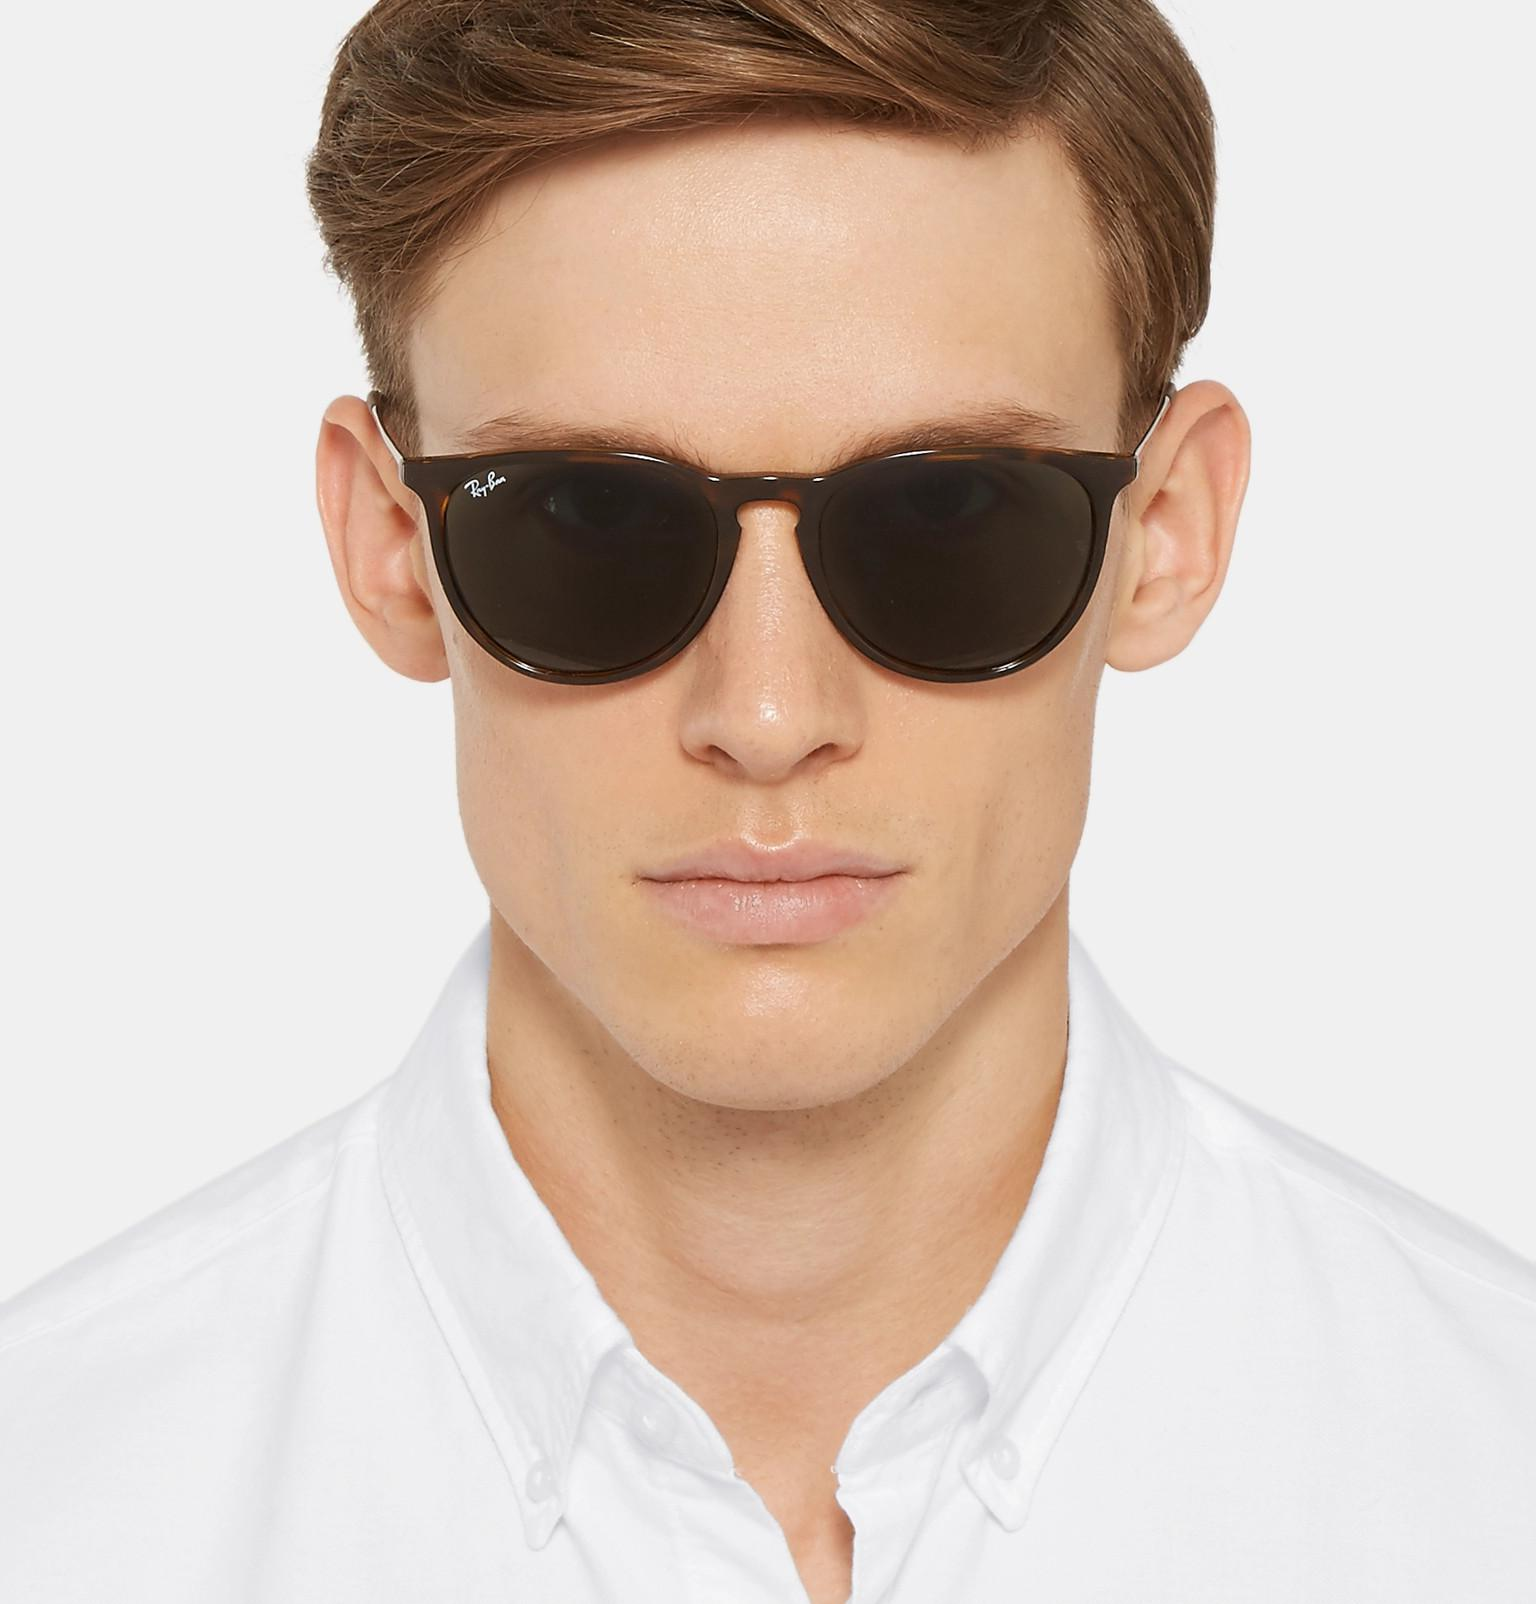 ea6a6ff152 Ray-Ban - Brown Erika Round-frame Tortoiseshell Acetate Sunglasses for Men  - Lyst. View fullscreen